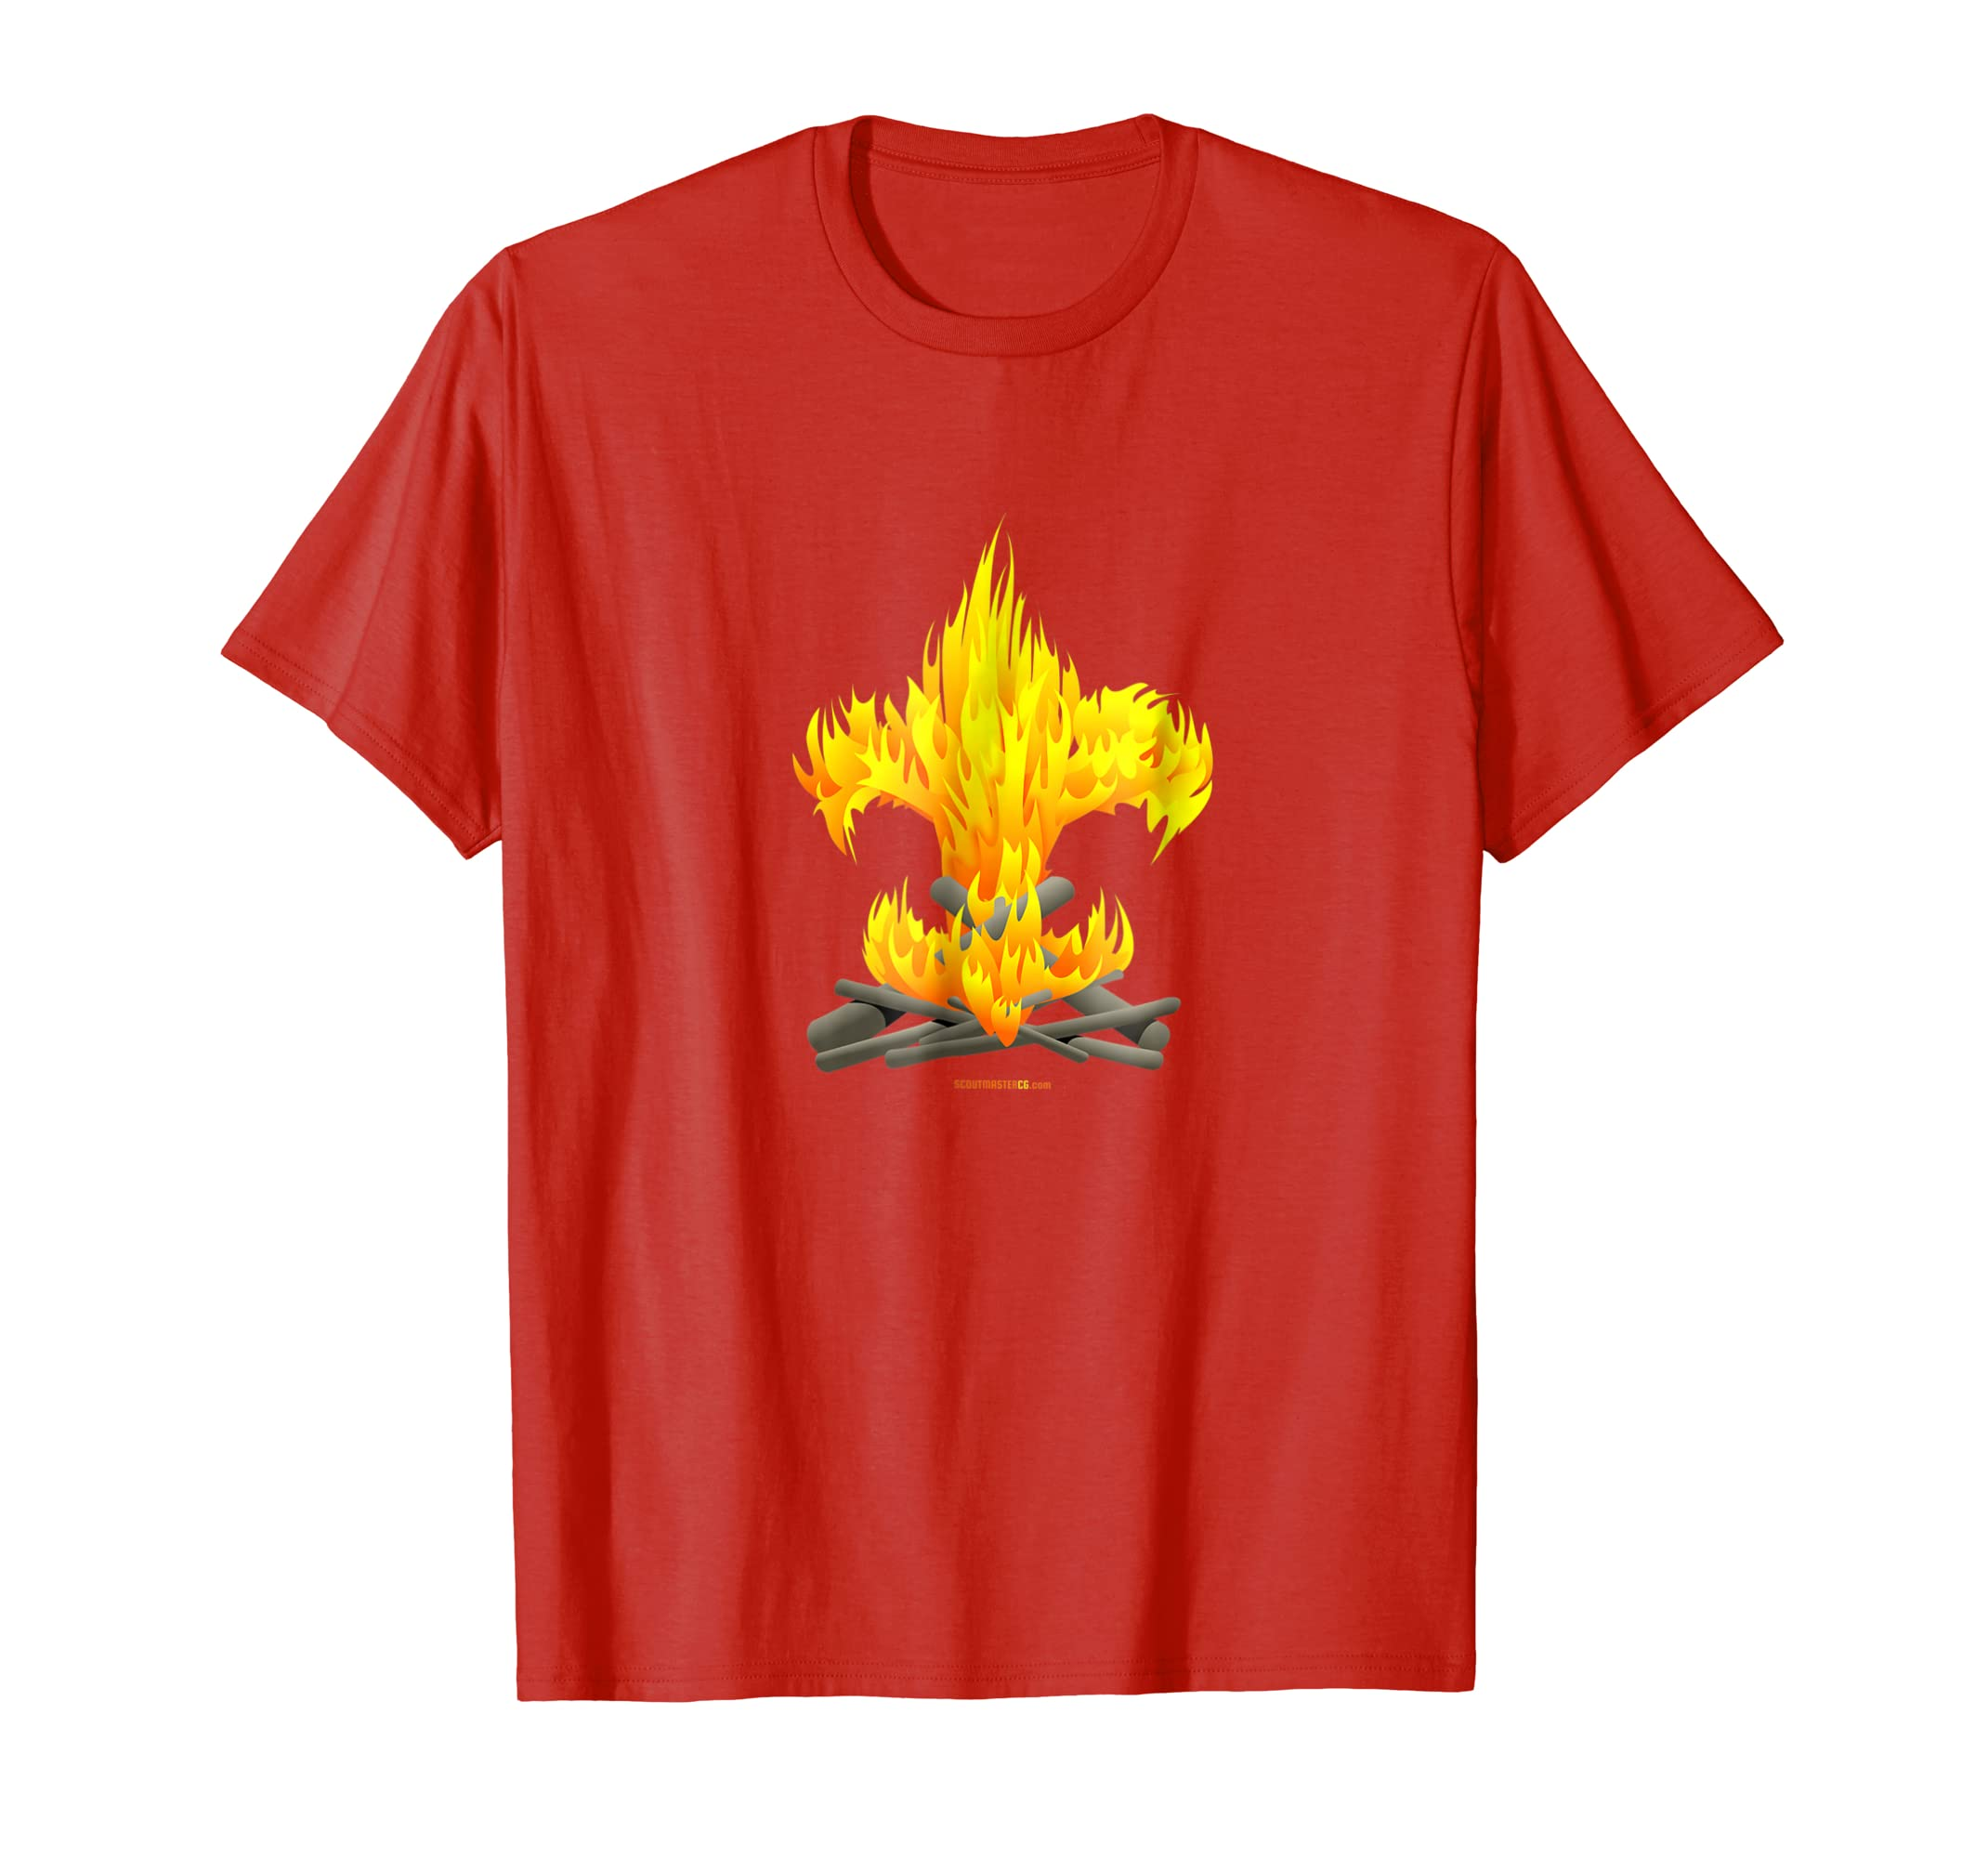 Amazon Fire Tee Original Design Clothing